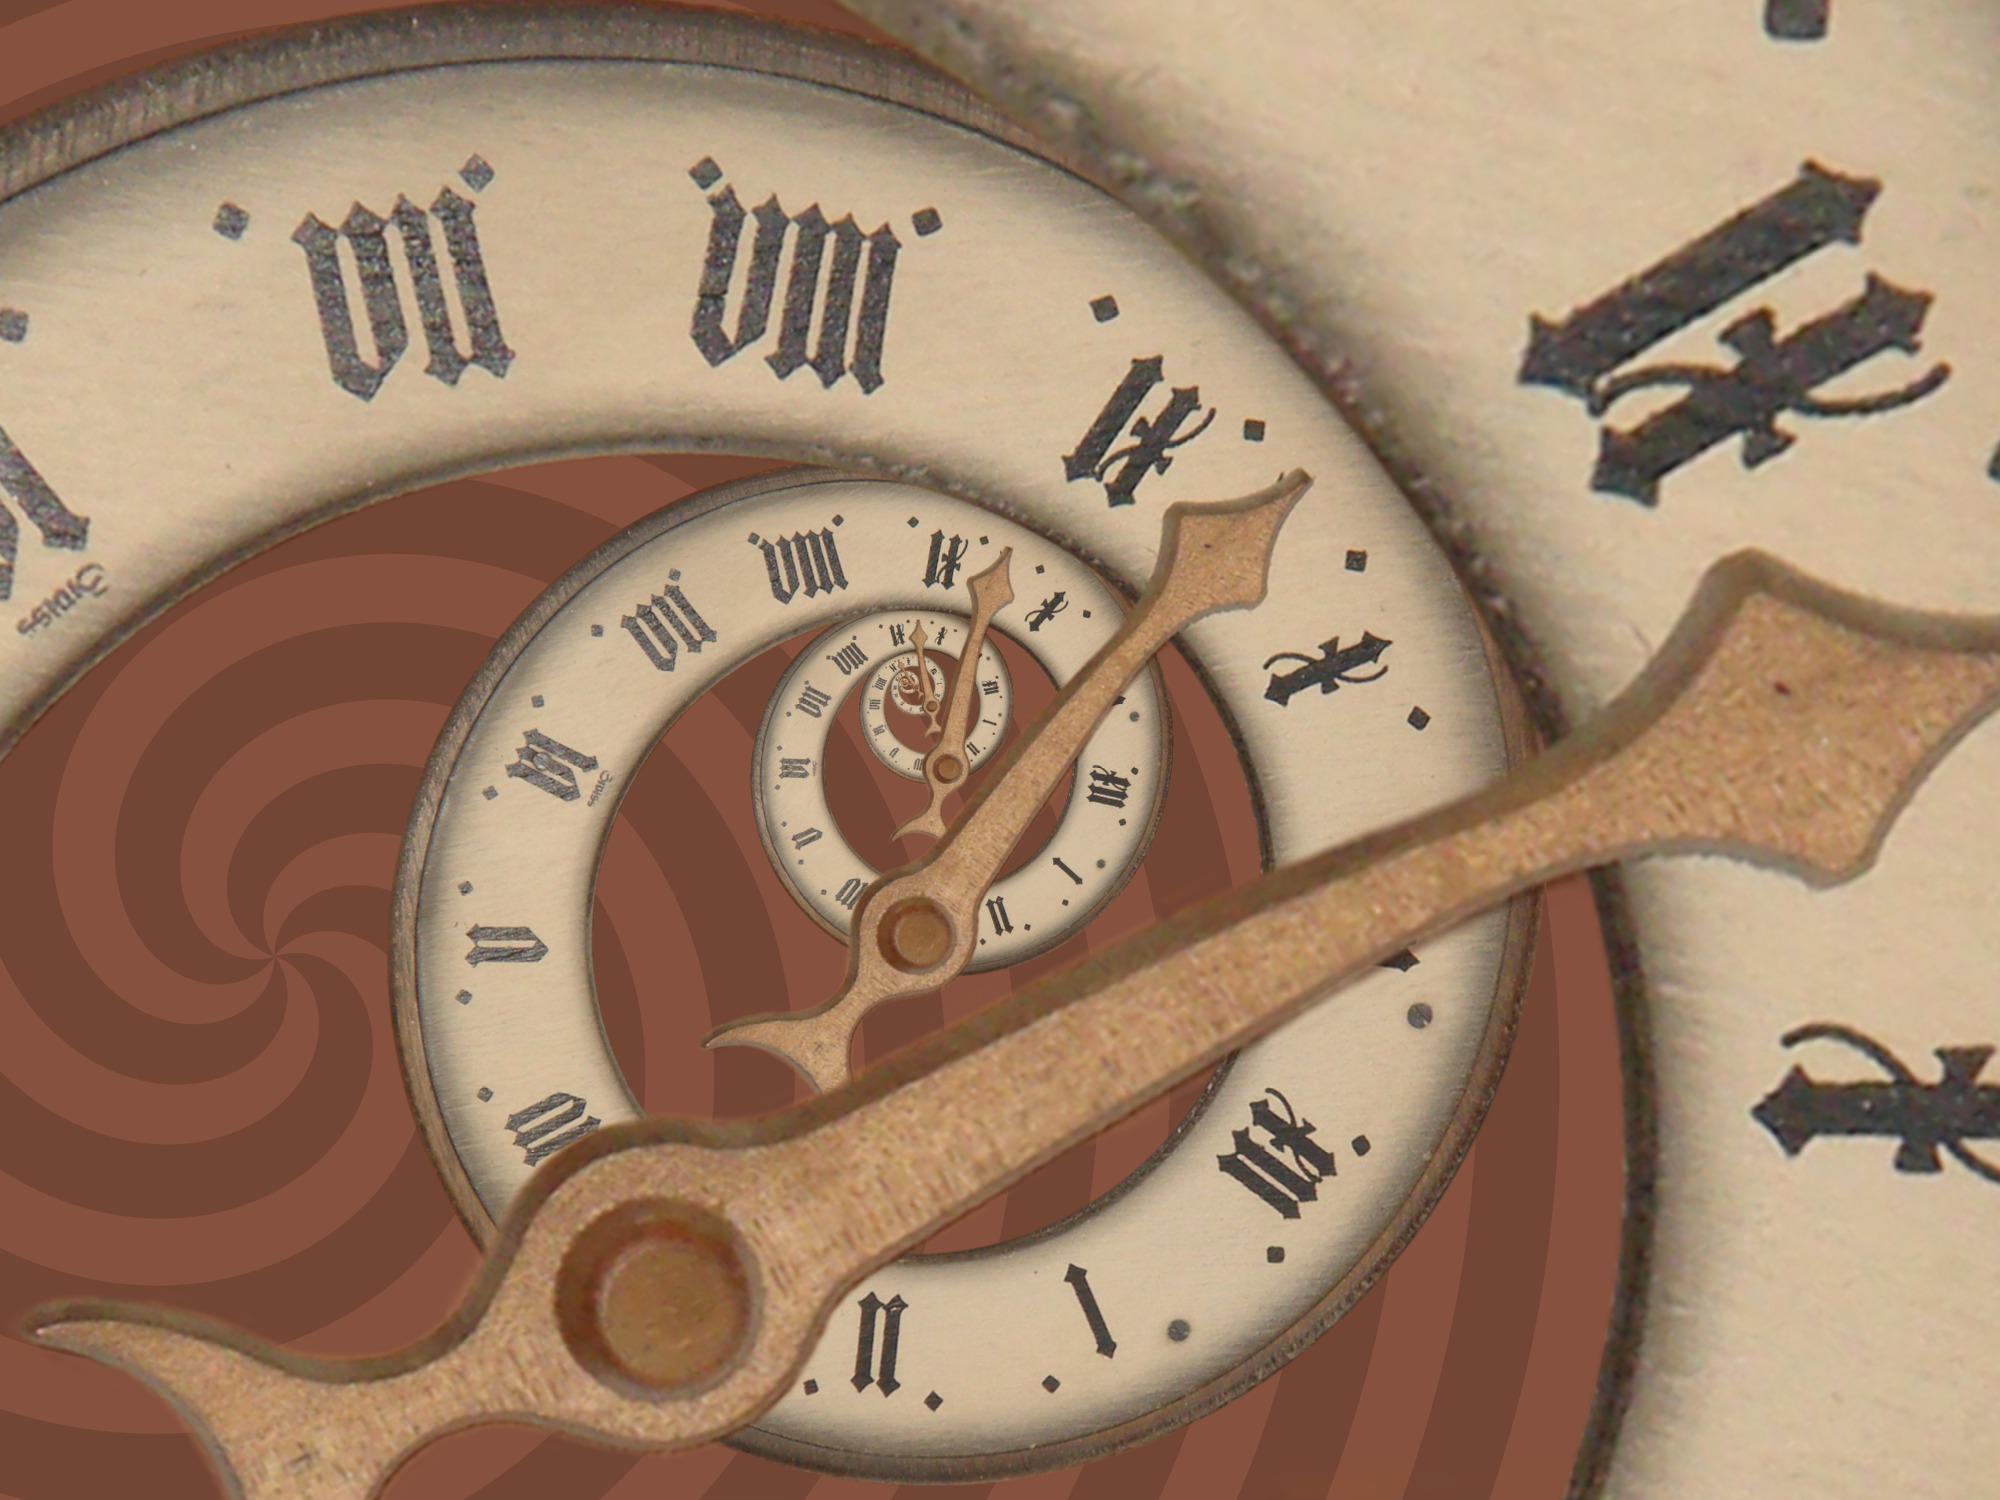 An illustration of a spiraling clock displaying roman numerals that circulate.